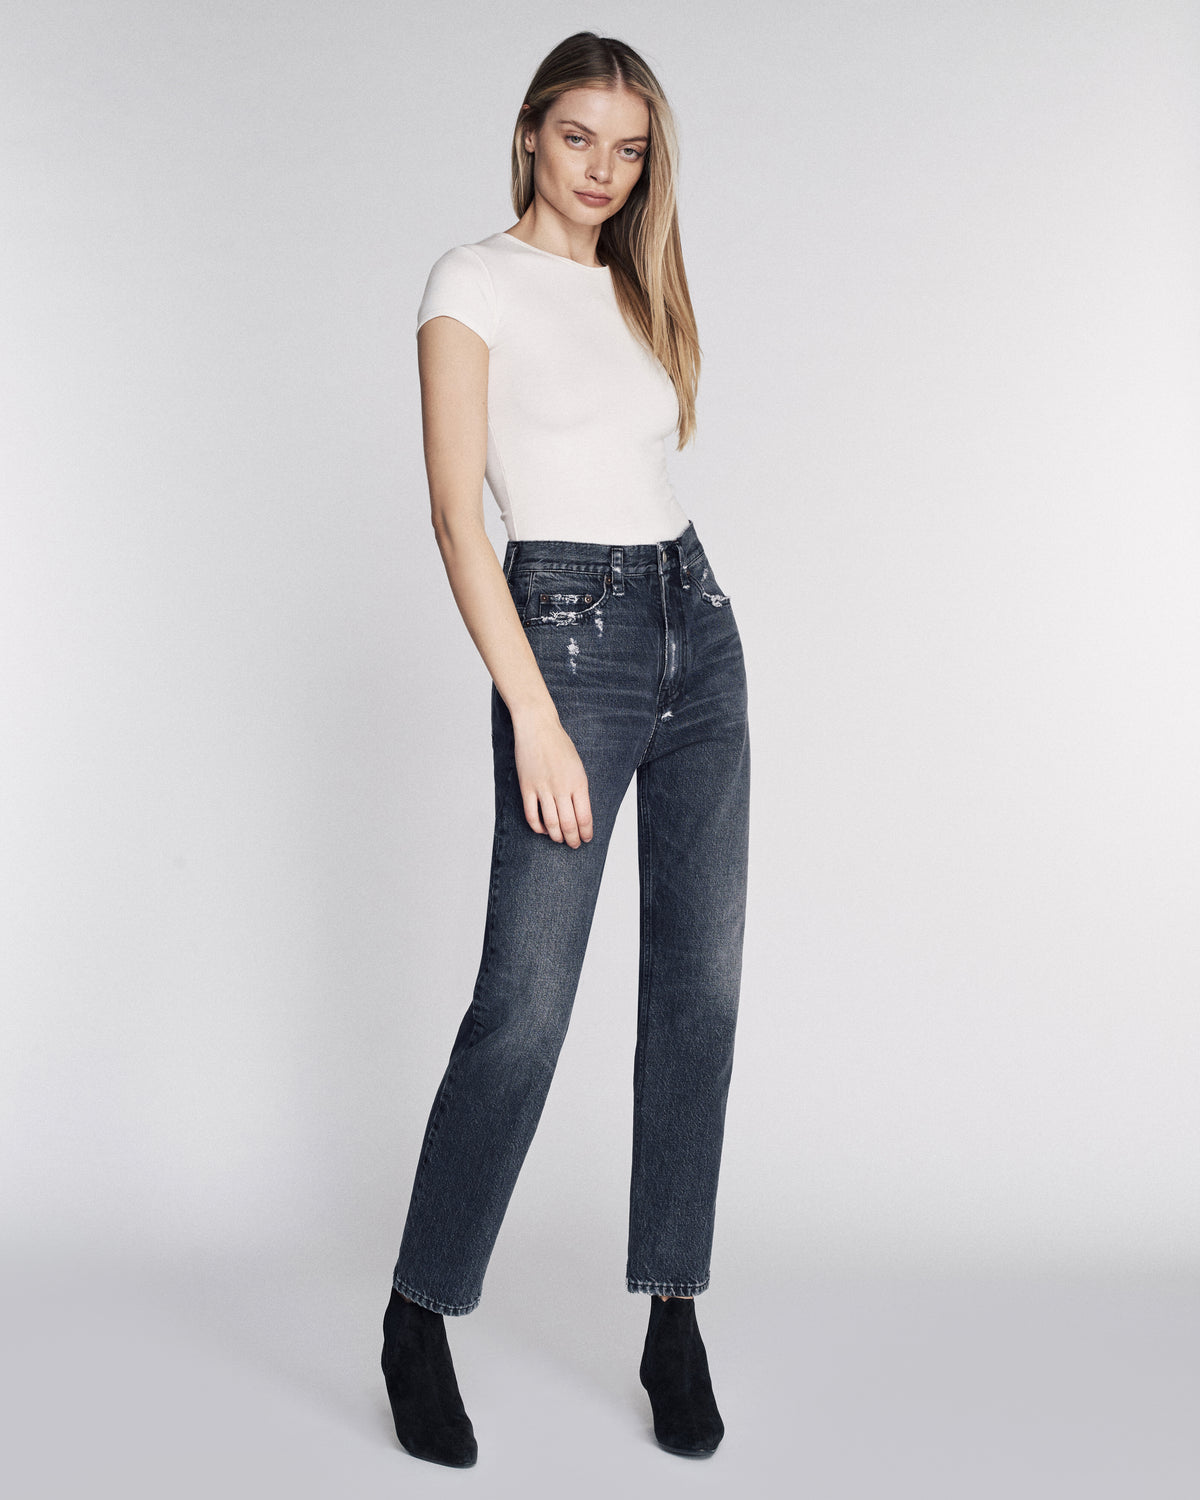 Grant Denim Pant in Faded Black Stone Wash